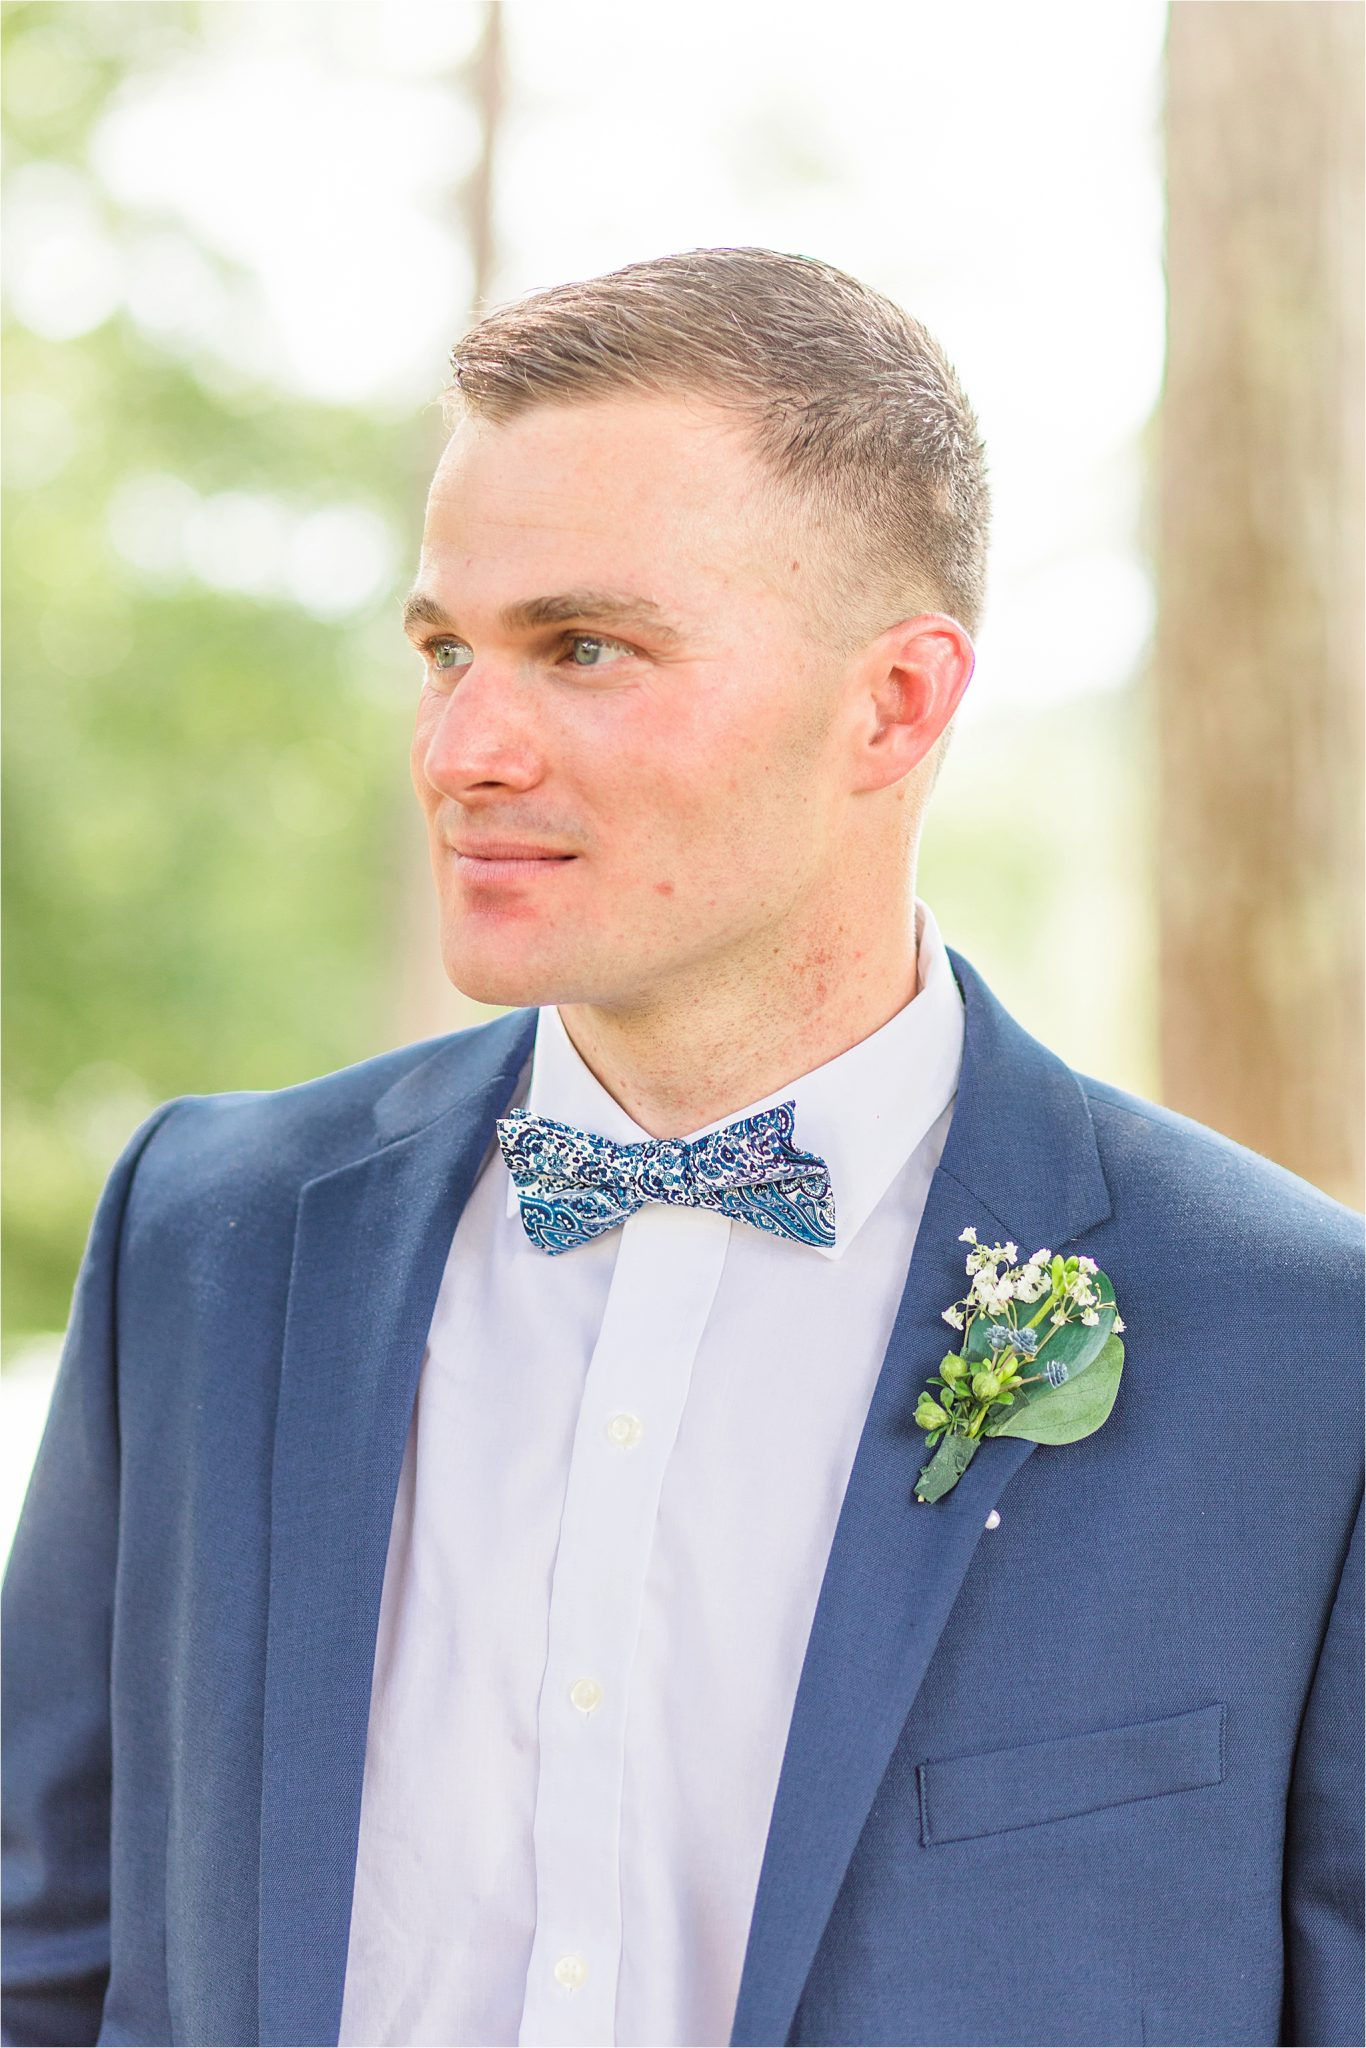 blue-grooms-suit-patterned-bow-tie-clean-cut-fitted-white-dress-shirt-portrait